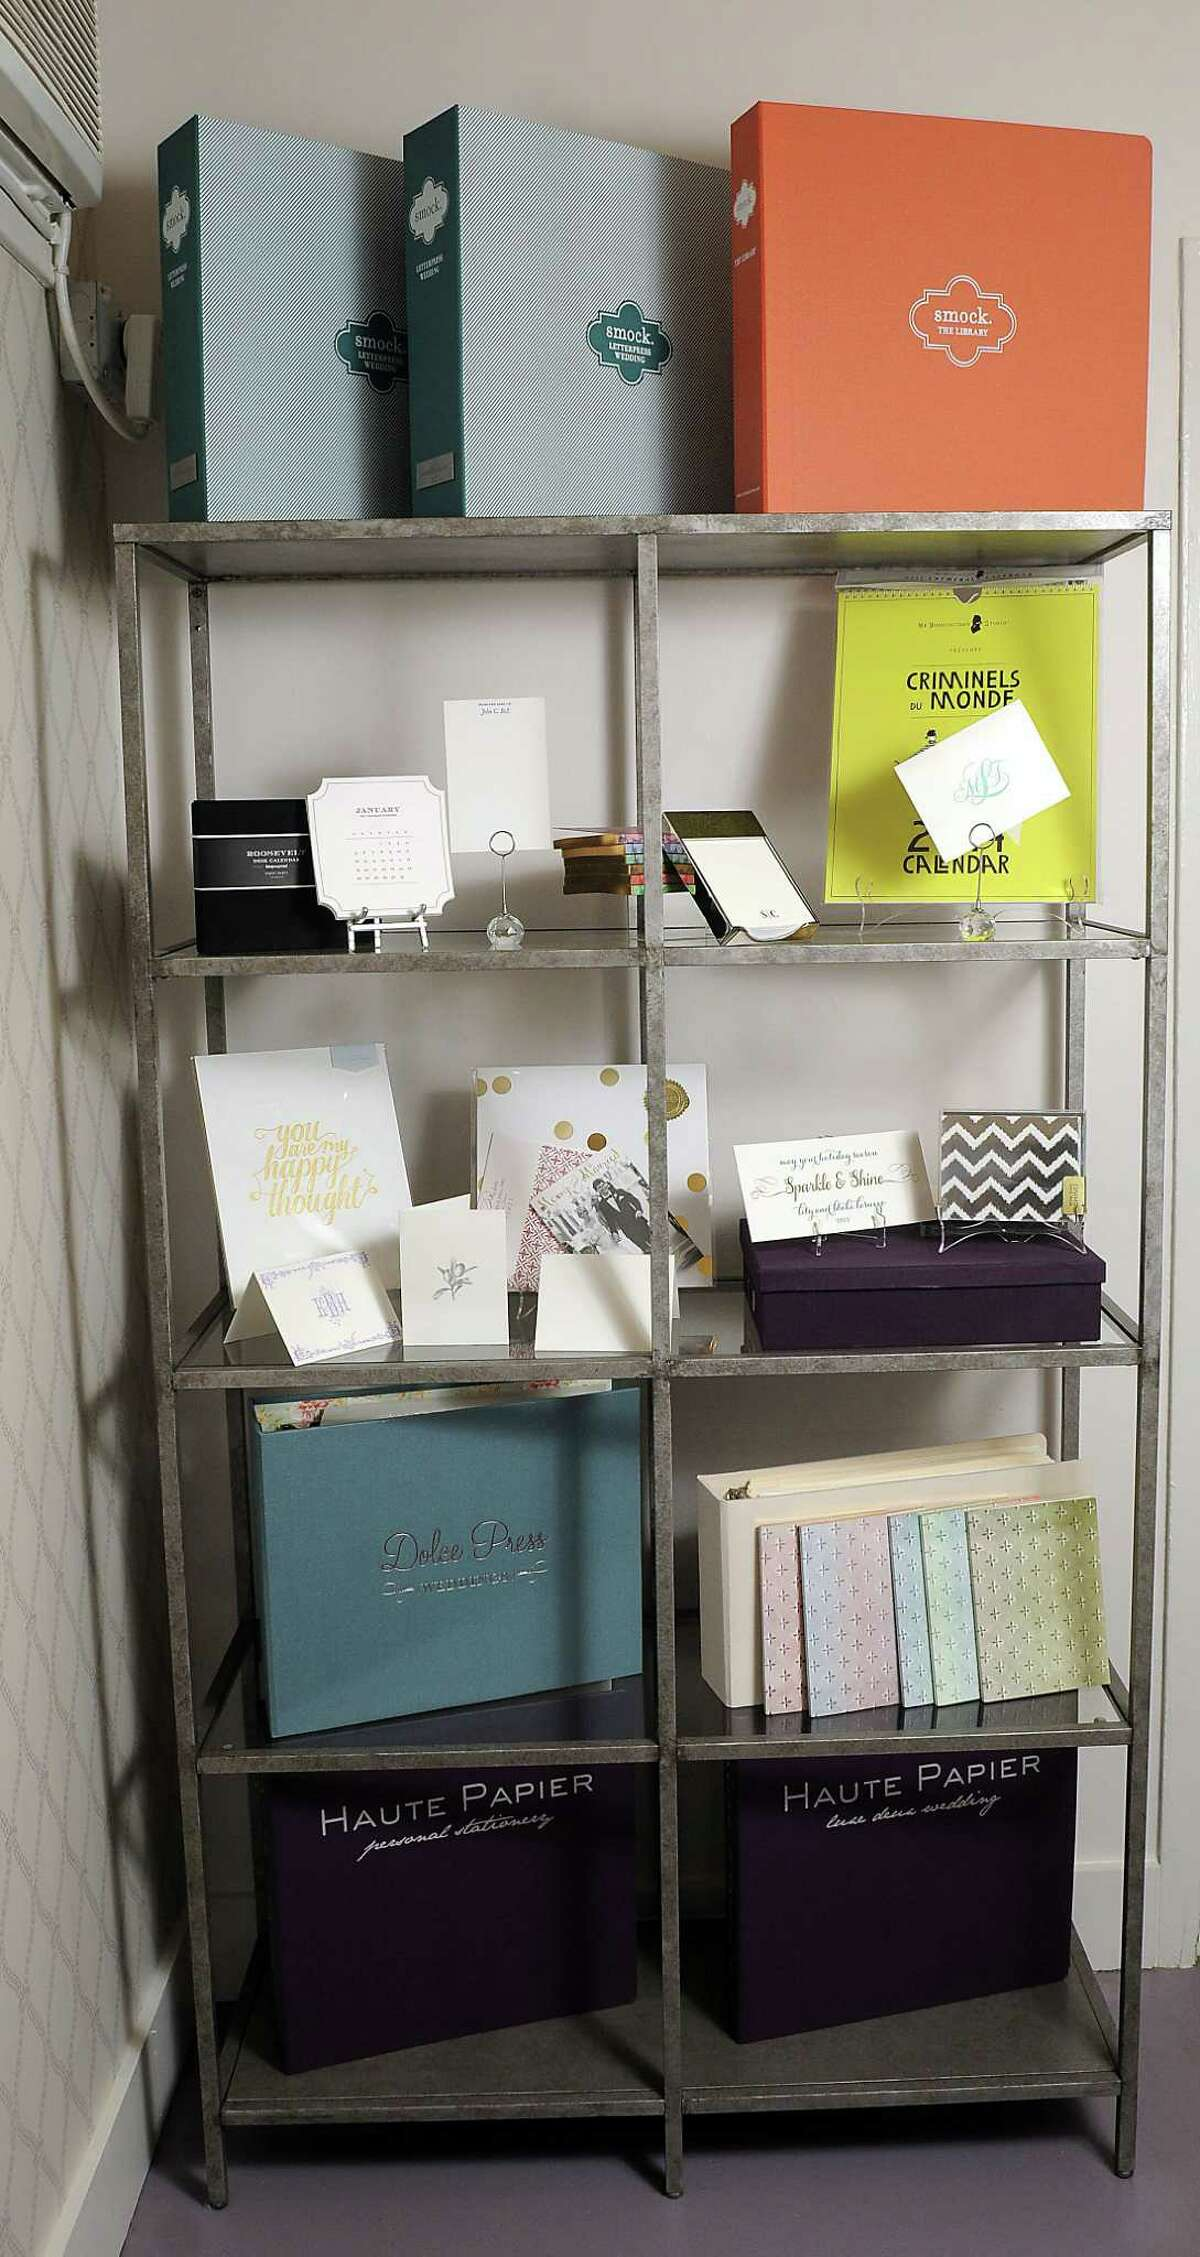 Some of the products for sale at Lily Lasuzzo's stationary store Lavender & Mint located inside the B2 furniture store on West Alabama Monday Jan 06, 2014.(Dave Rossman photo)